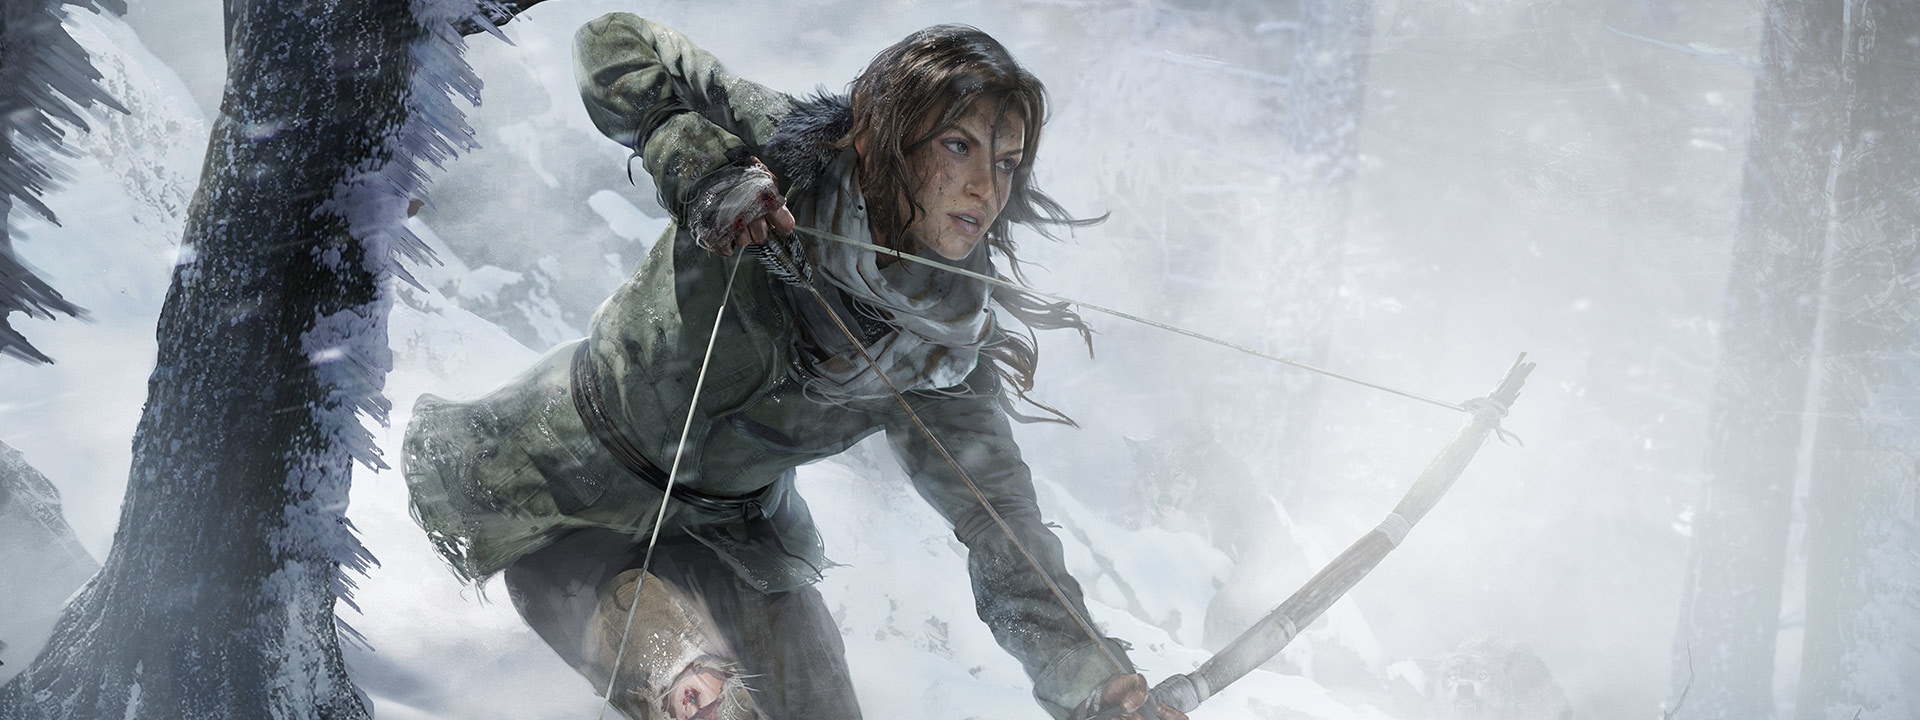 Lara Croft with a hunting bow